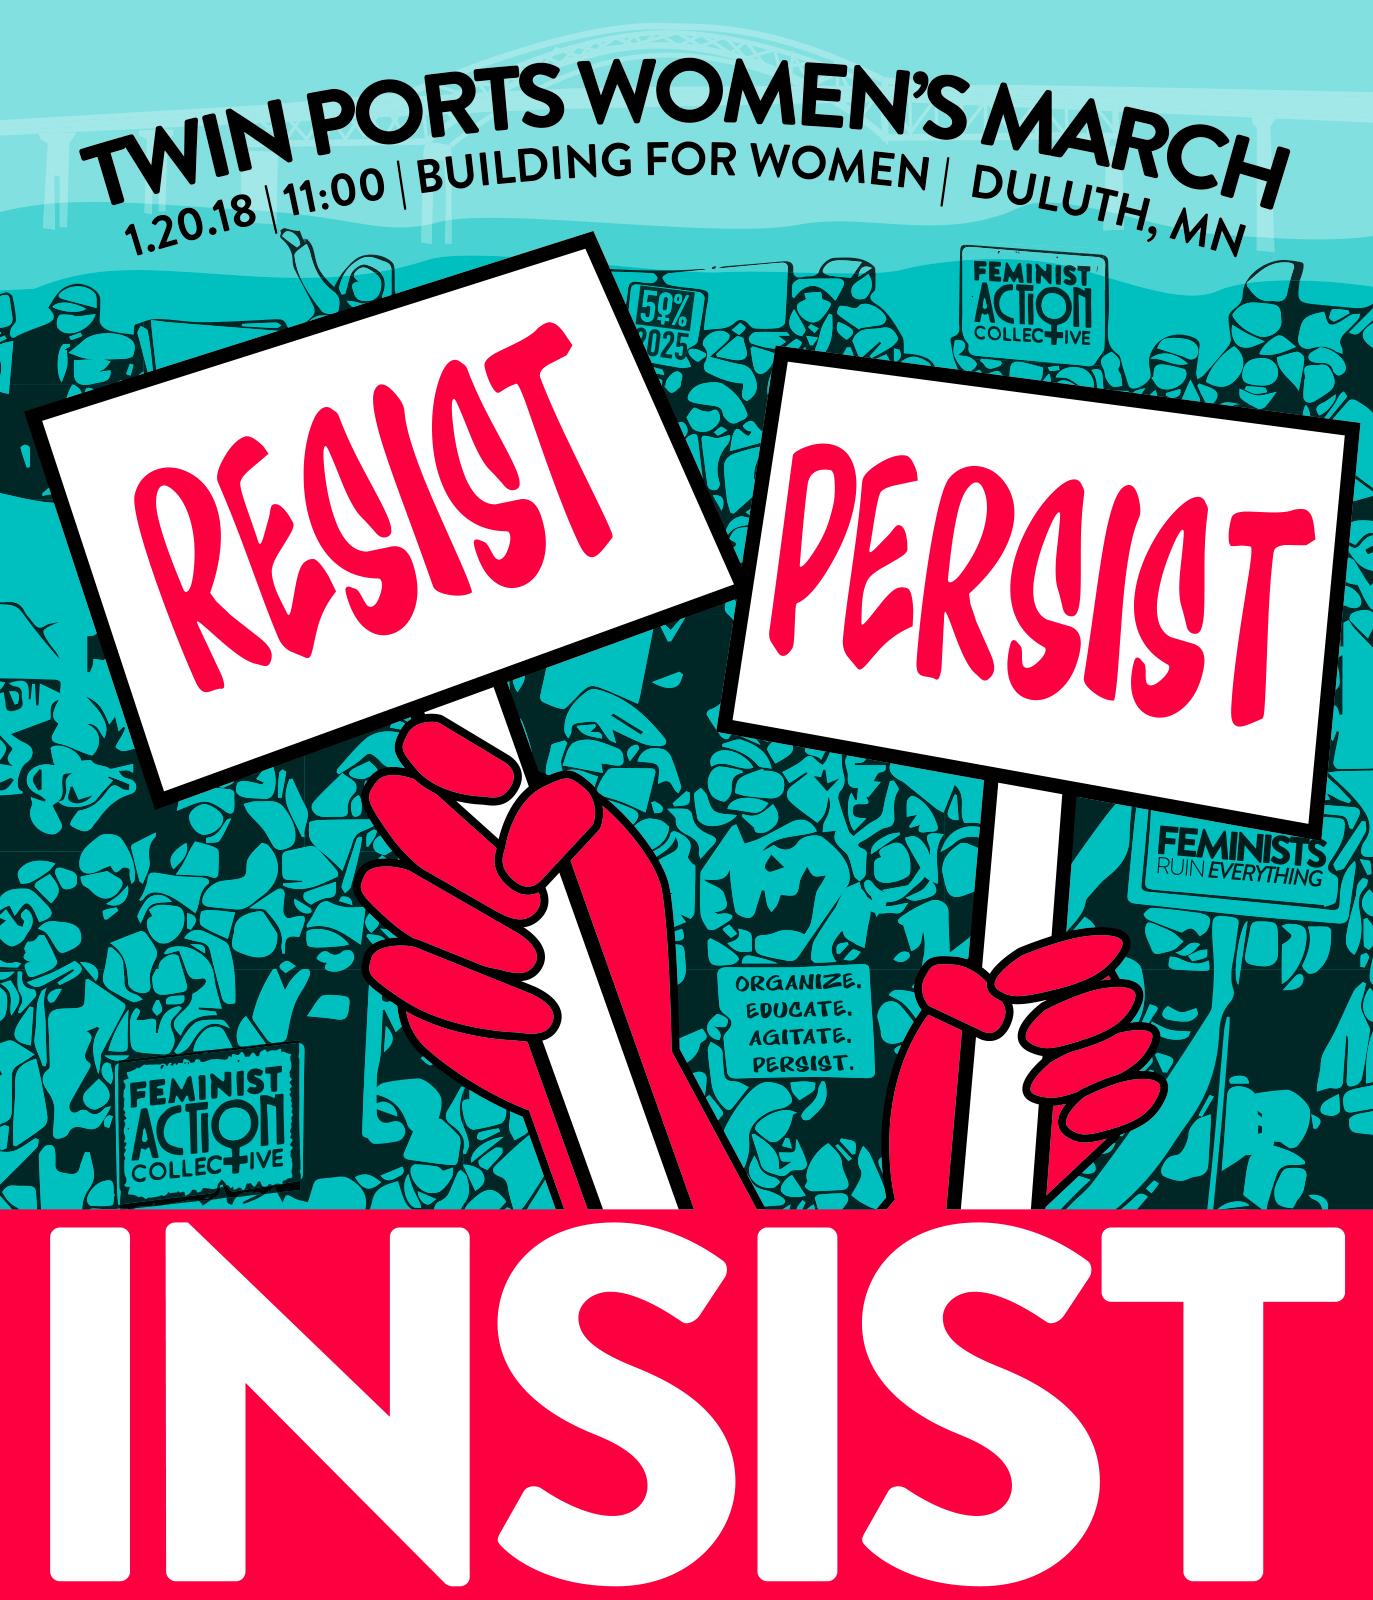 January 20, 201811 a.m. - 12:30 p.m. Starting: Building for Women, 32 E 1st St, Duluth, MN 55802Ending: Duluth City Hall, 411 W 1st St, Duluth, MN 55802 -